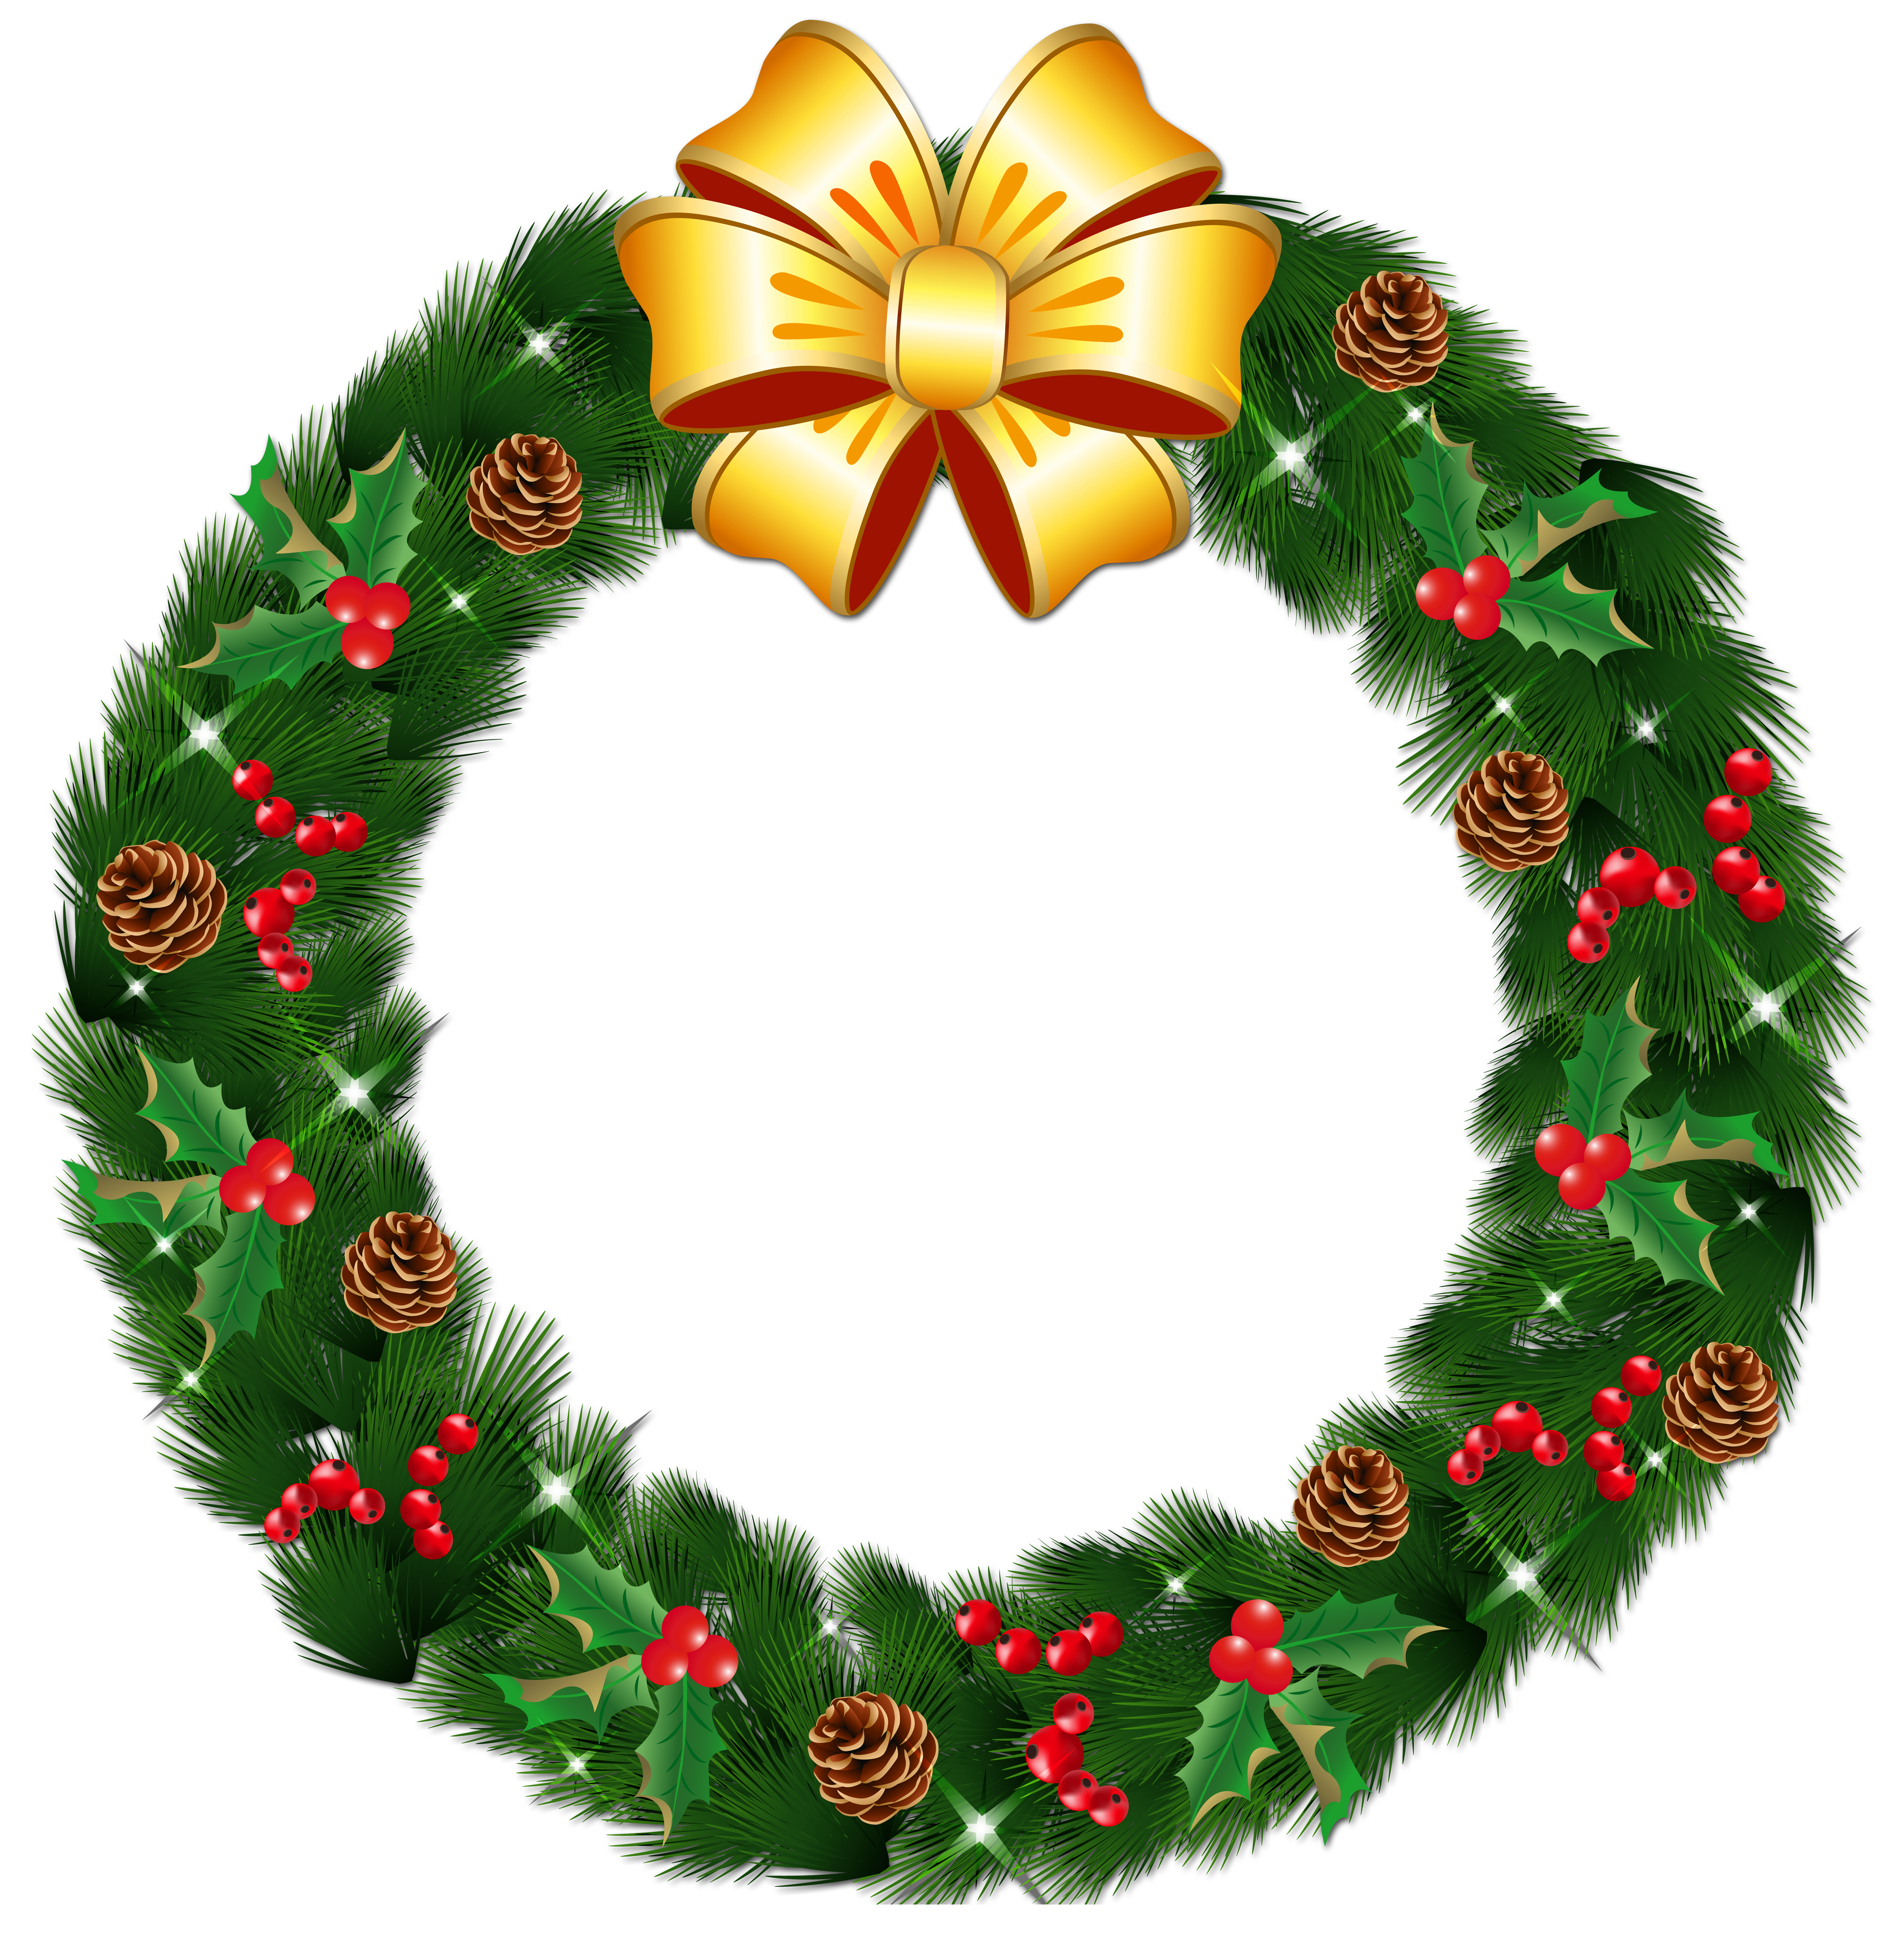 Wreath clipart transparent background Pine Wreath Christmas with Transparent